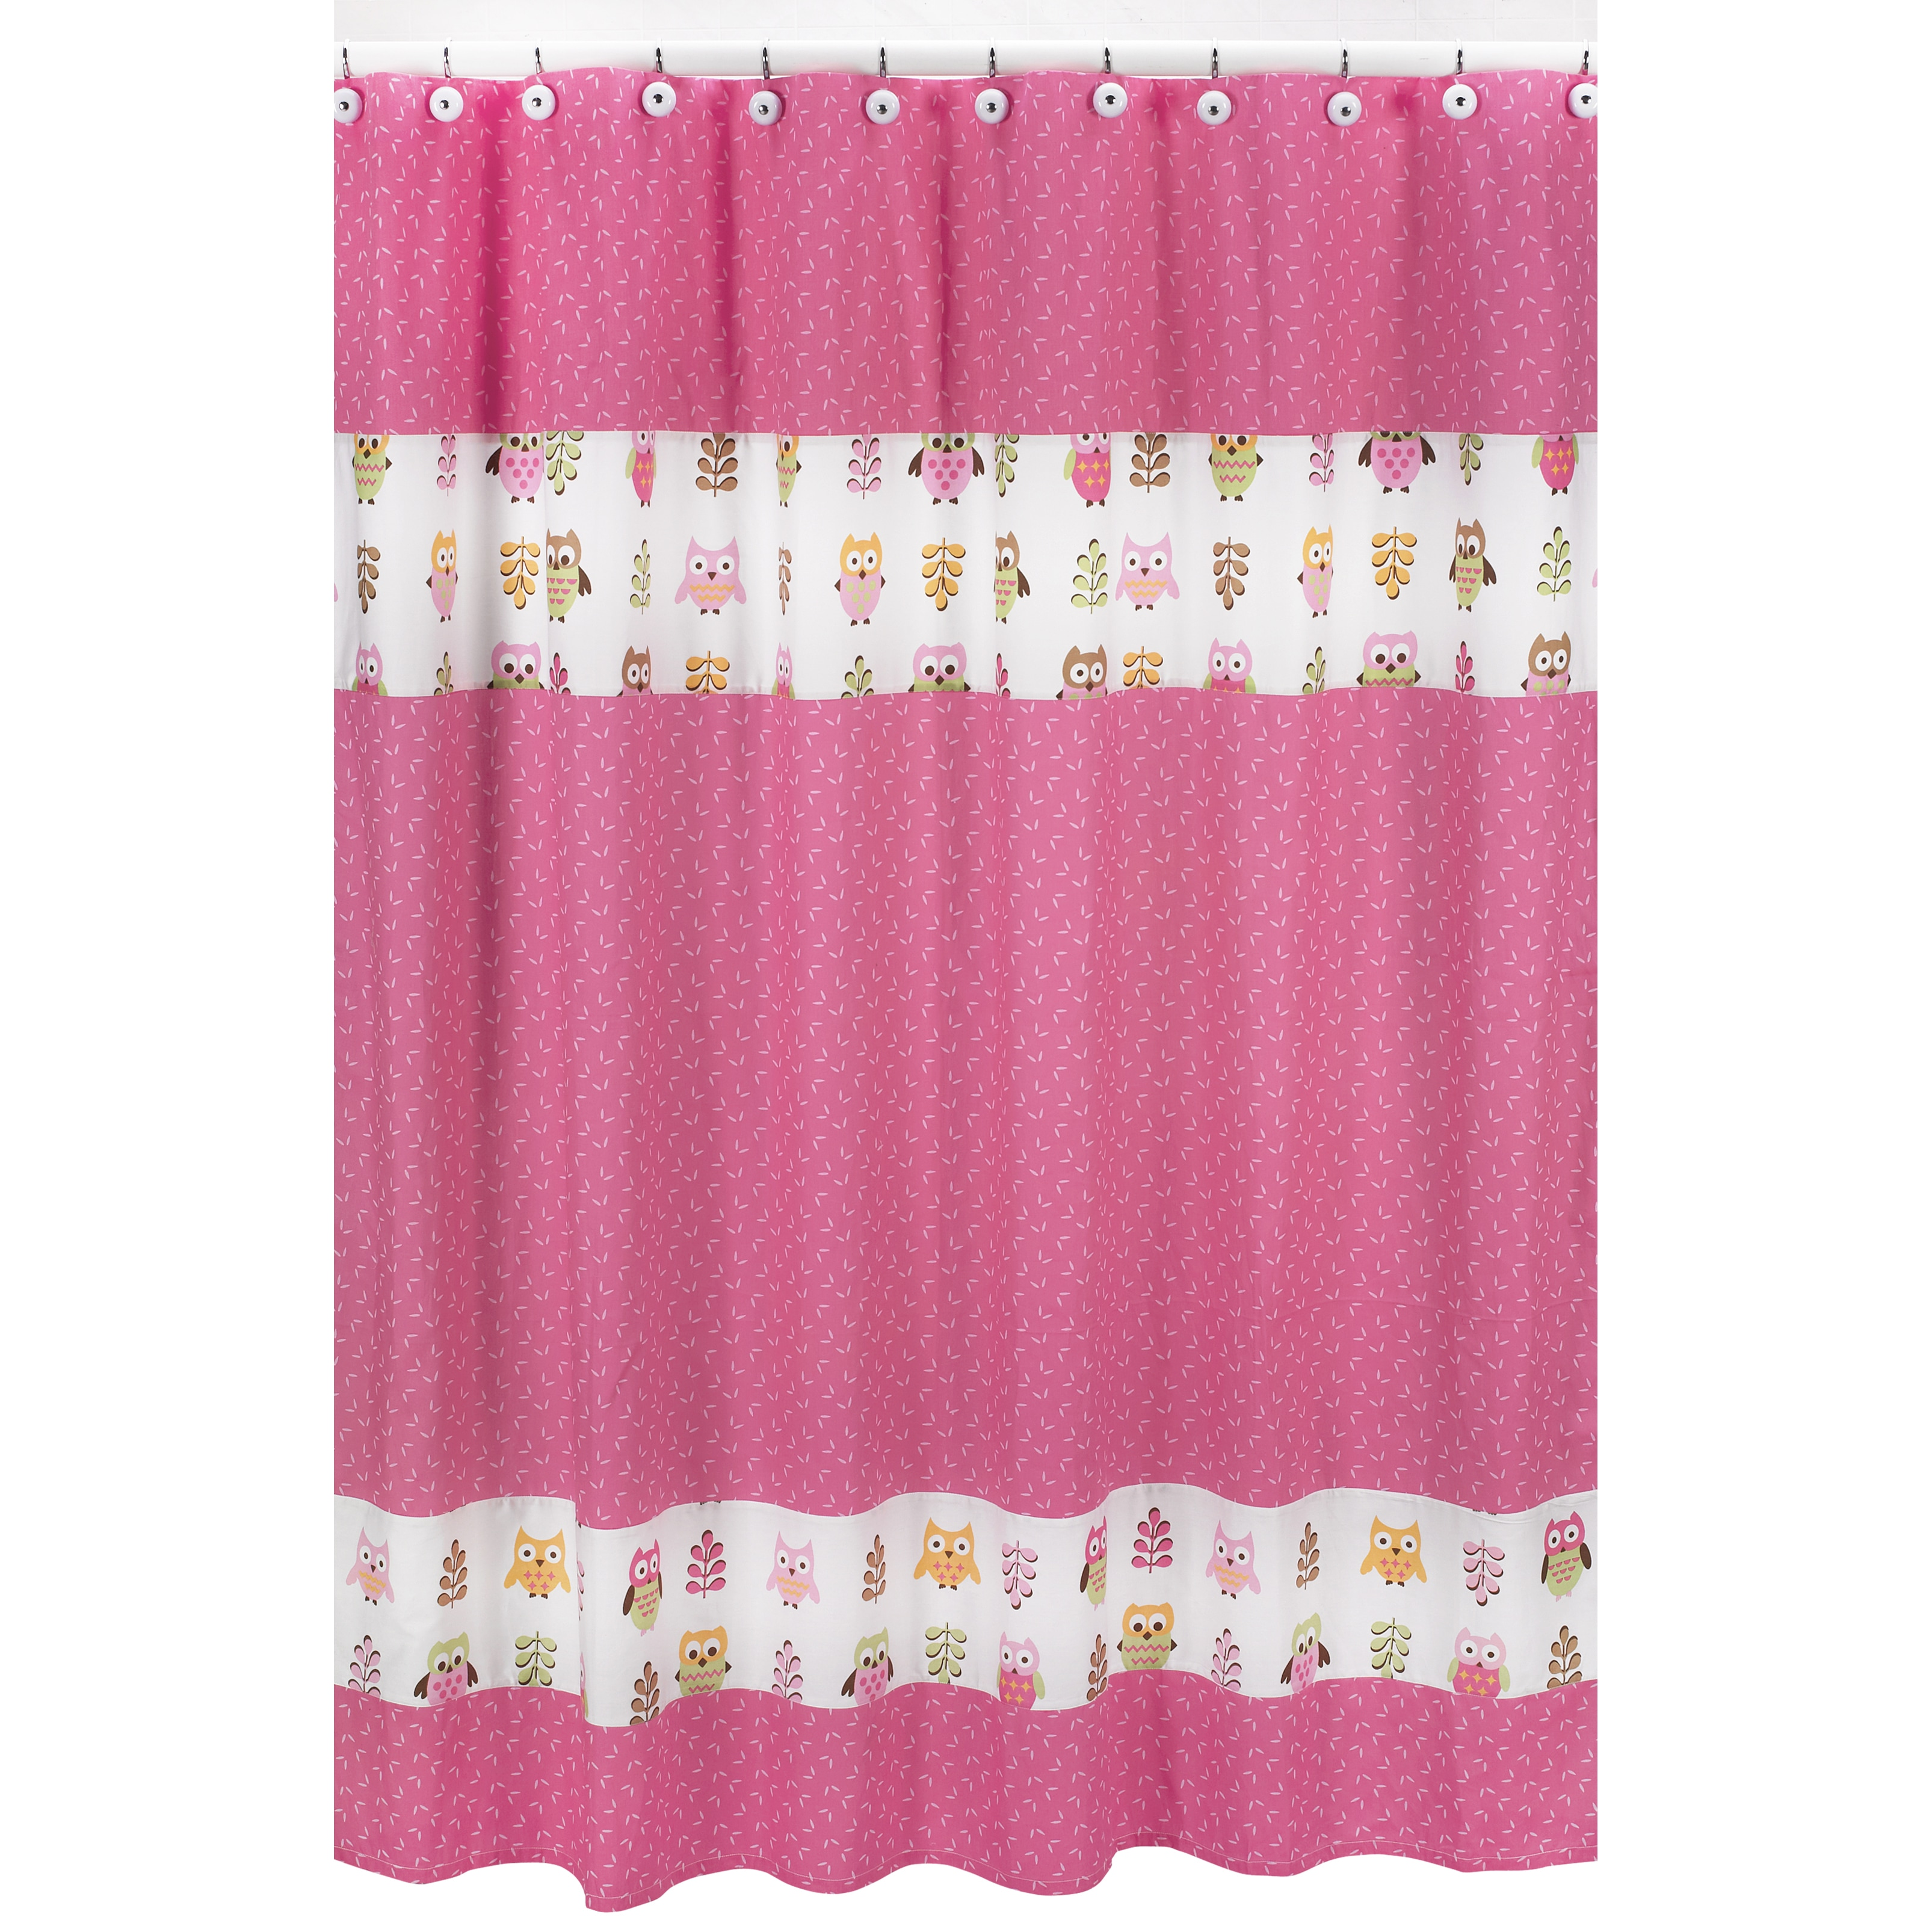 Sweet Jojo Designs Pink Happy Owl Kids Shower Curtain at Sears.com